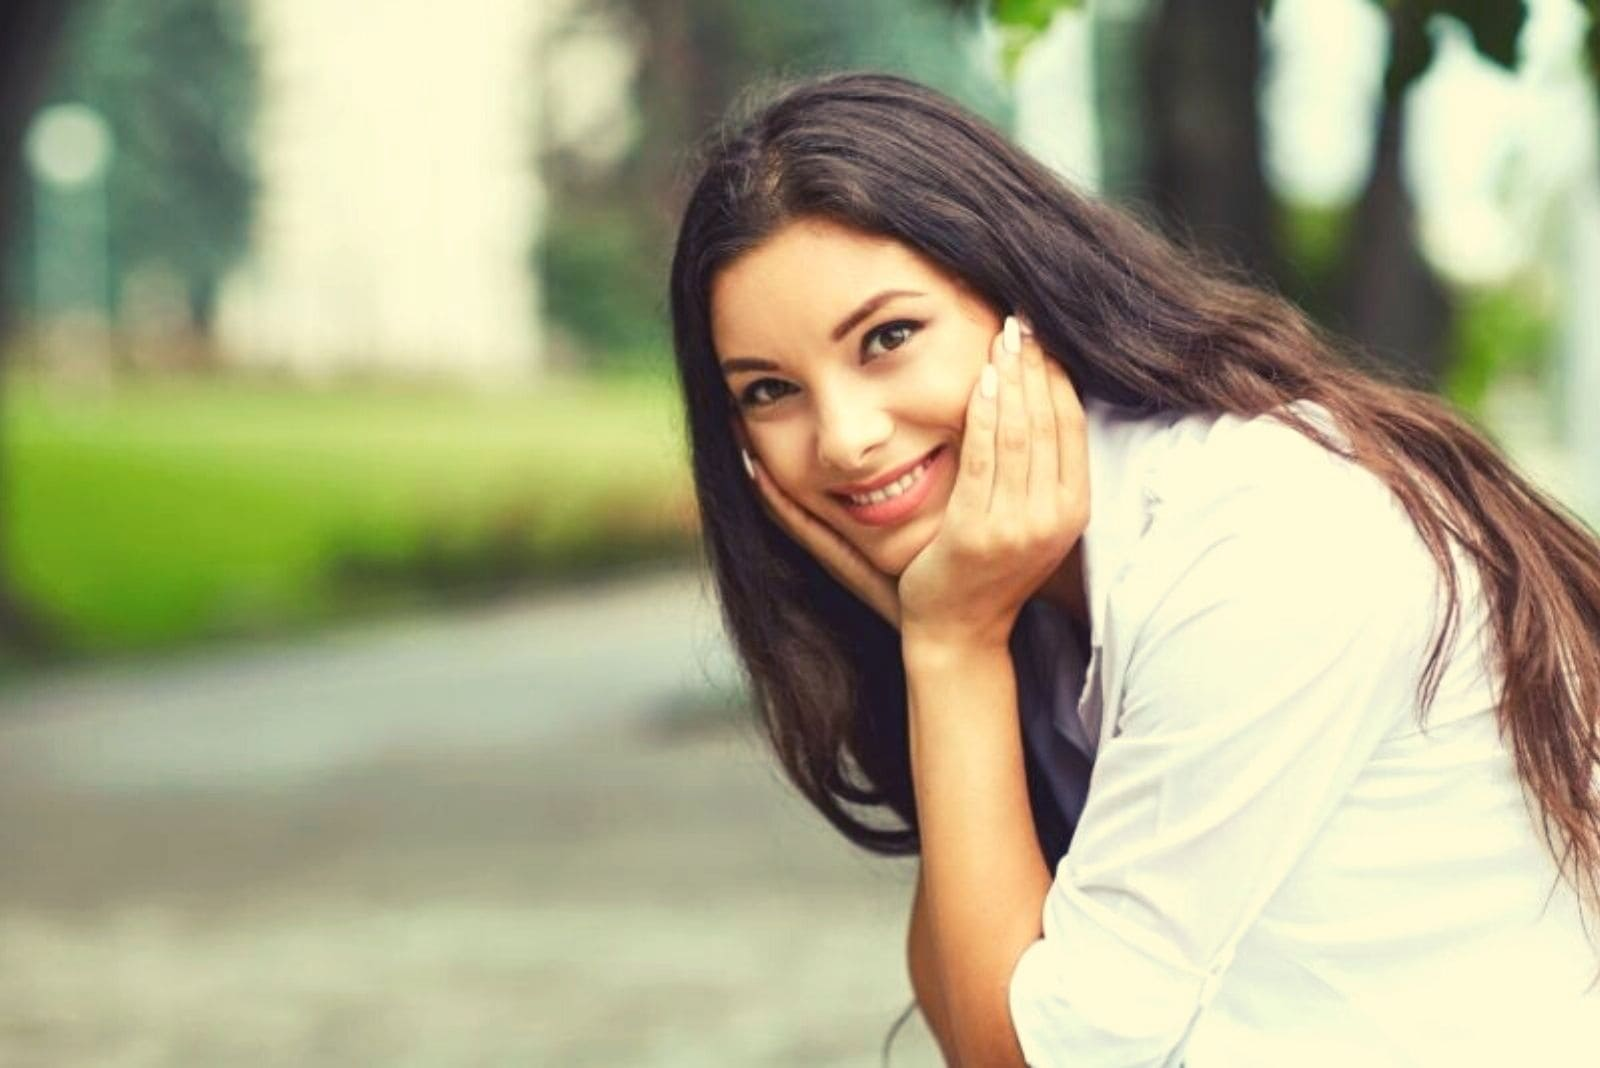 smiling woman sitting at the side of the street with hands supporting her face